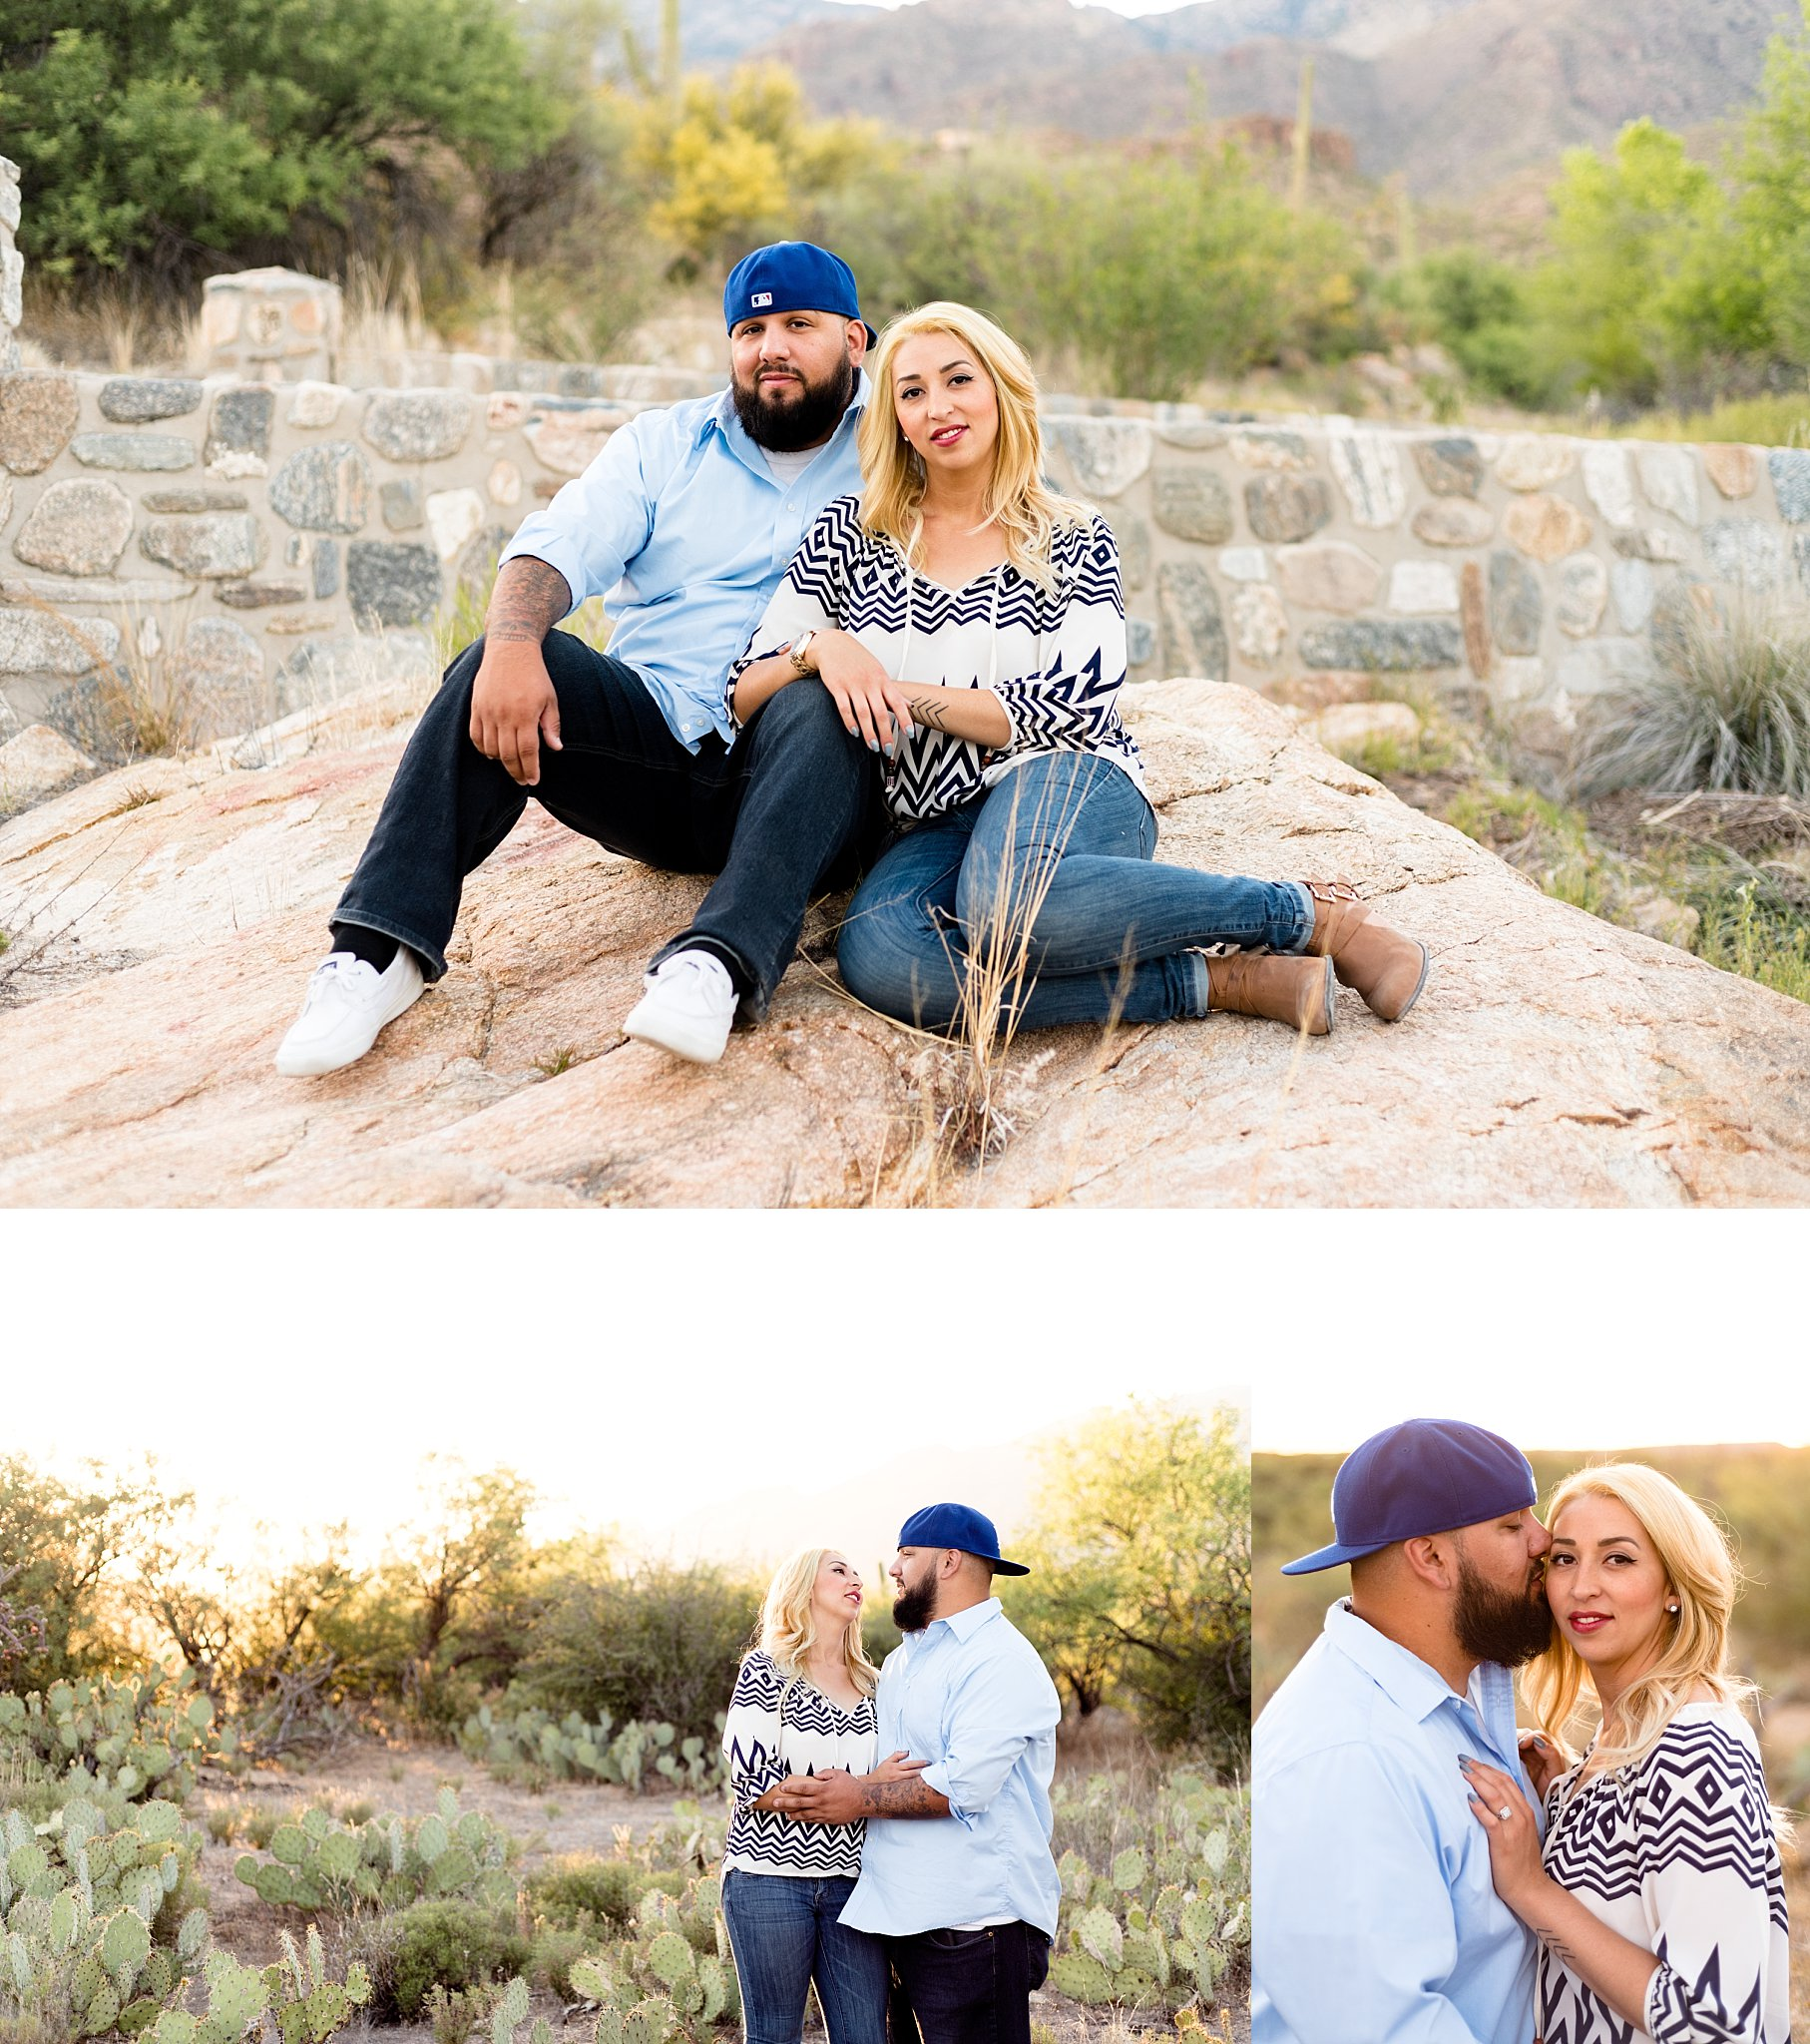 I feel so blessed to have such amazing clients. Kassandra and Danny had so much love for each other, and their wedding day is going to be beautiful!